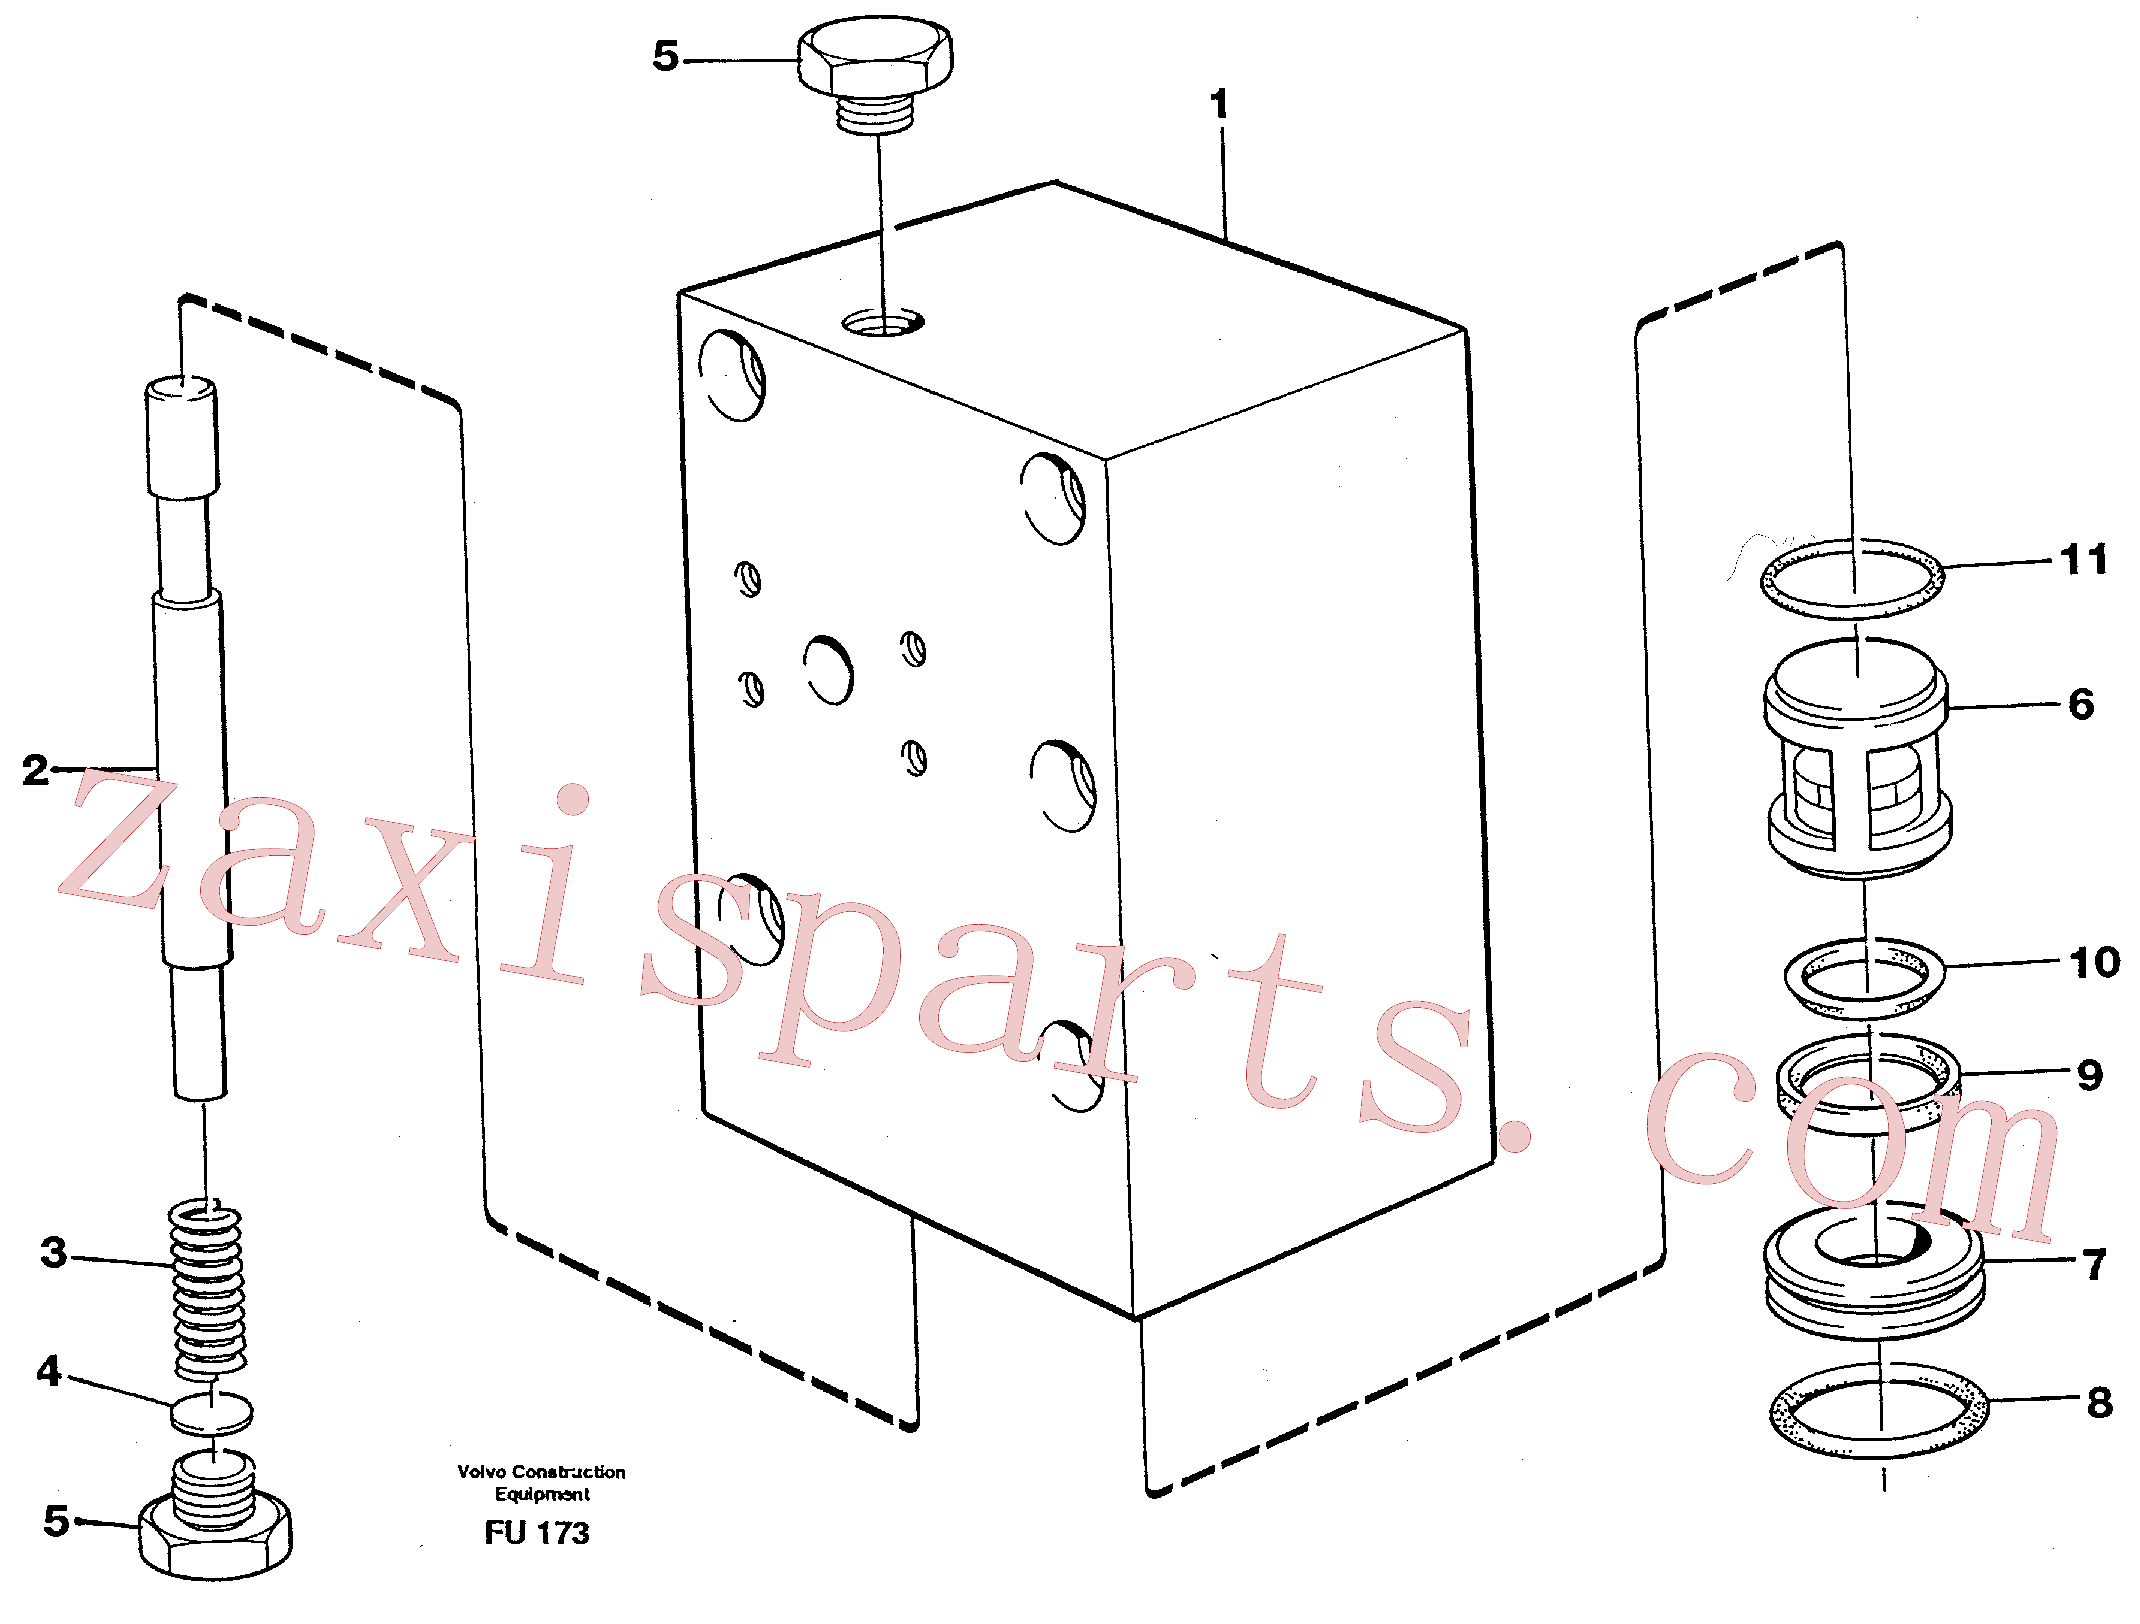 VOE14236534 for Volvo Connection valve Crawler track(FU173 assembly)